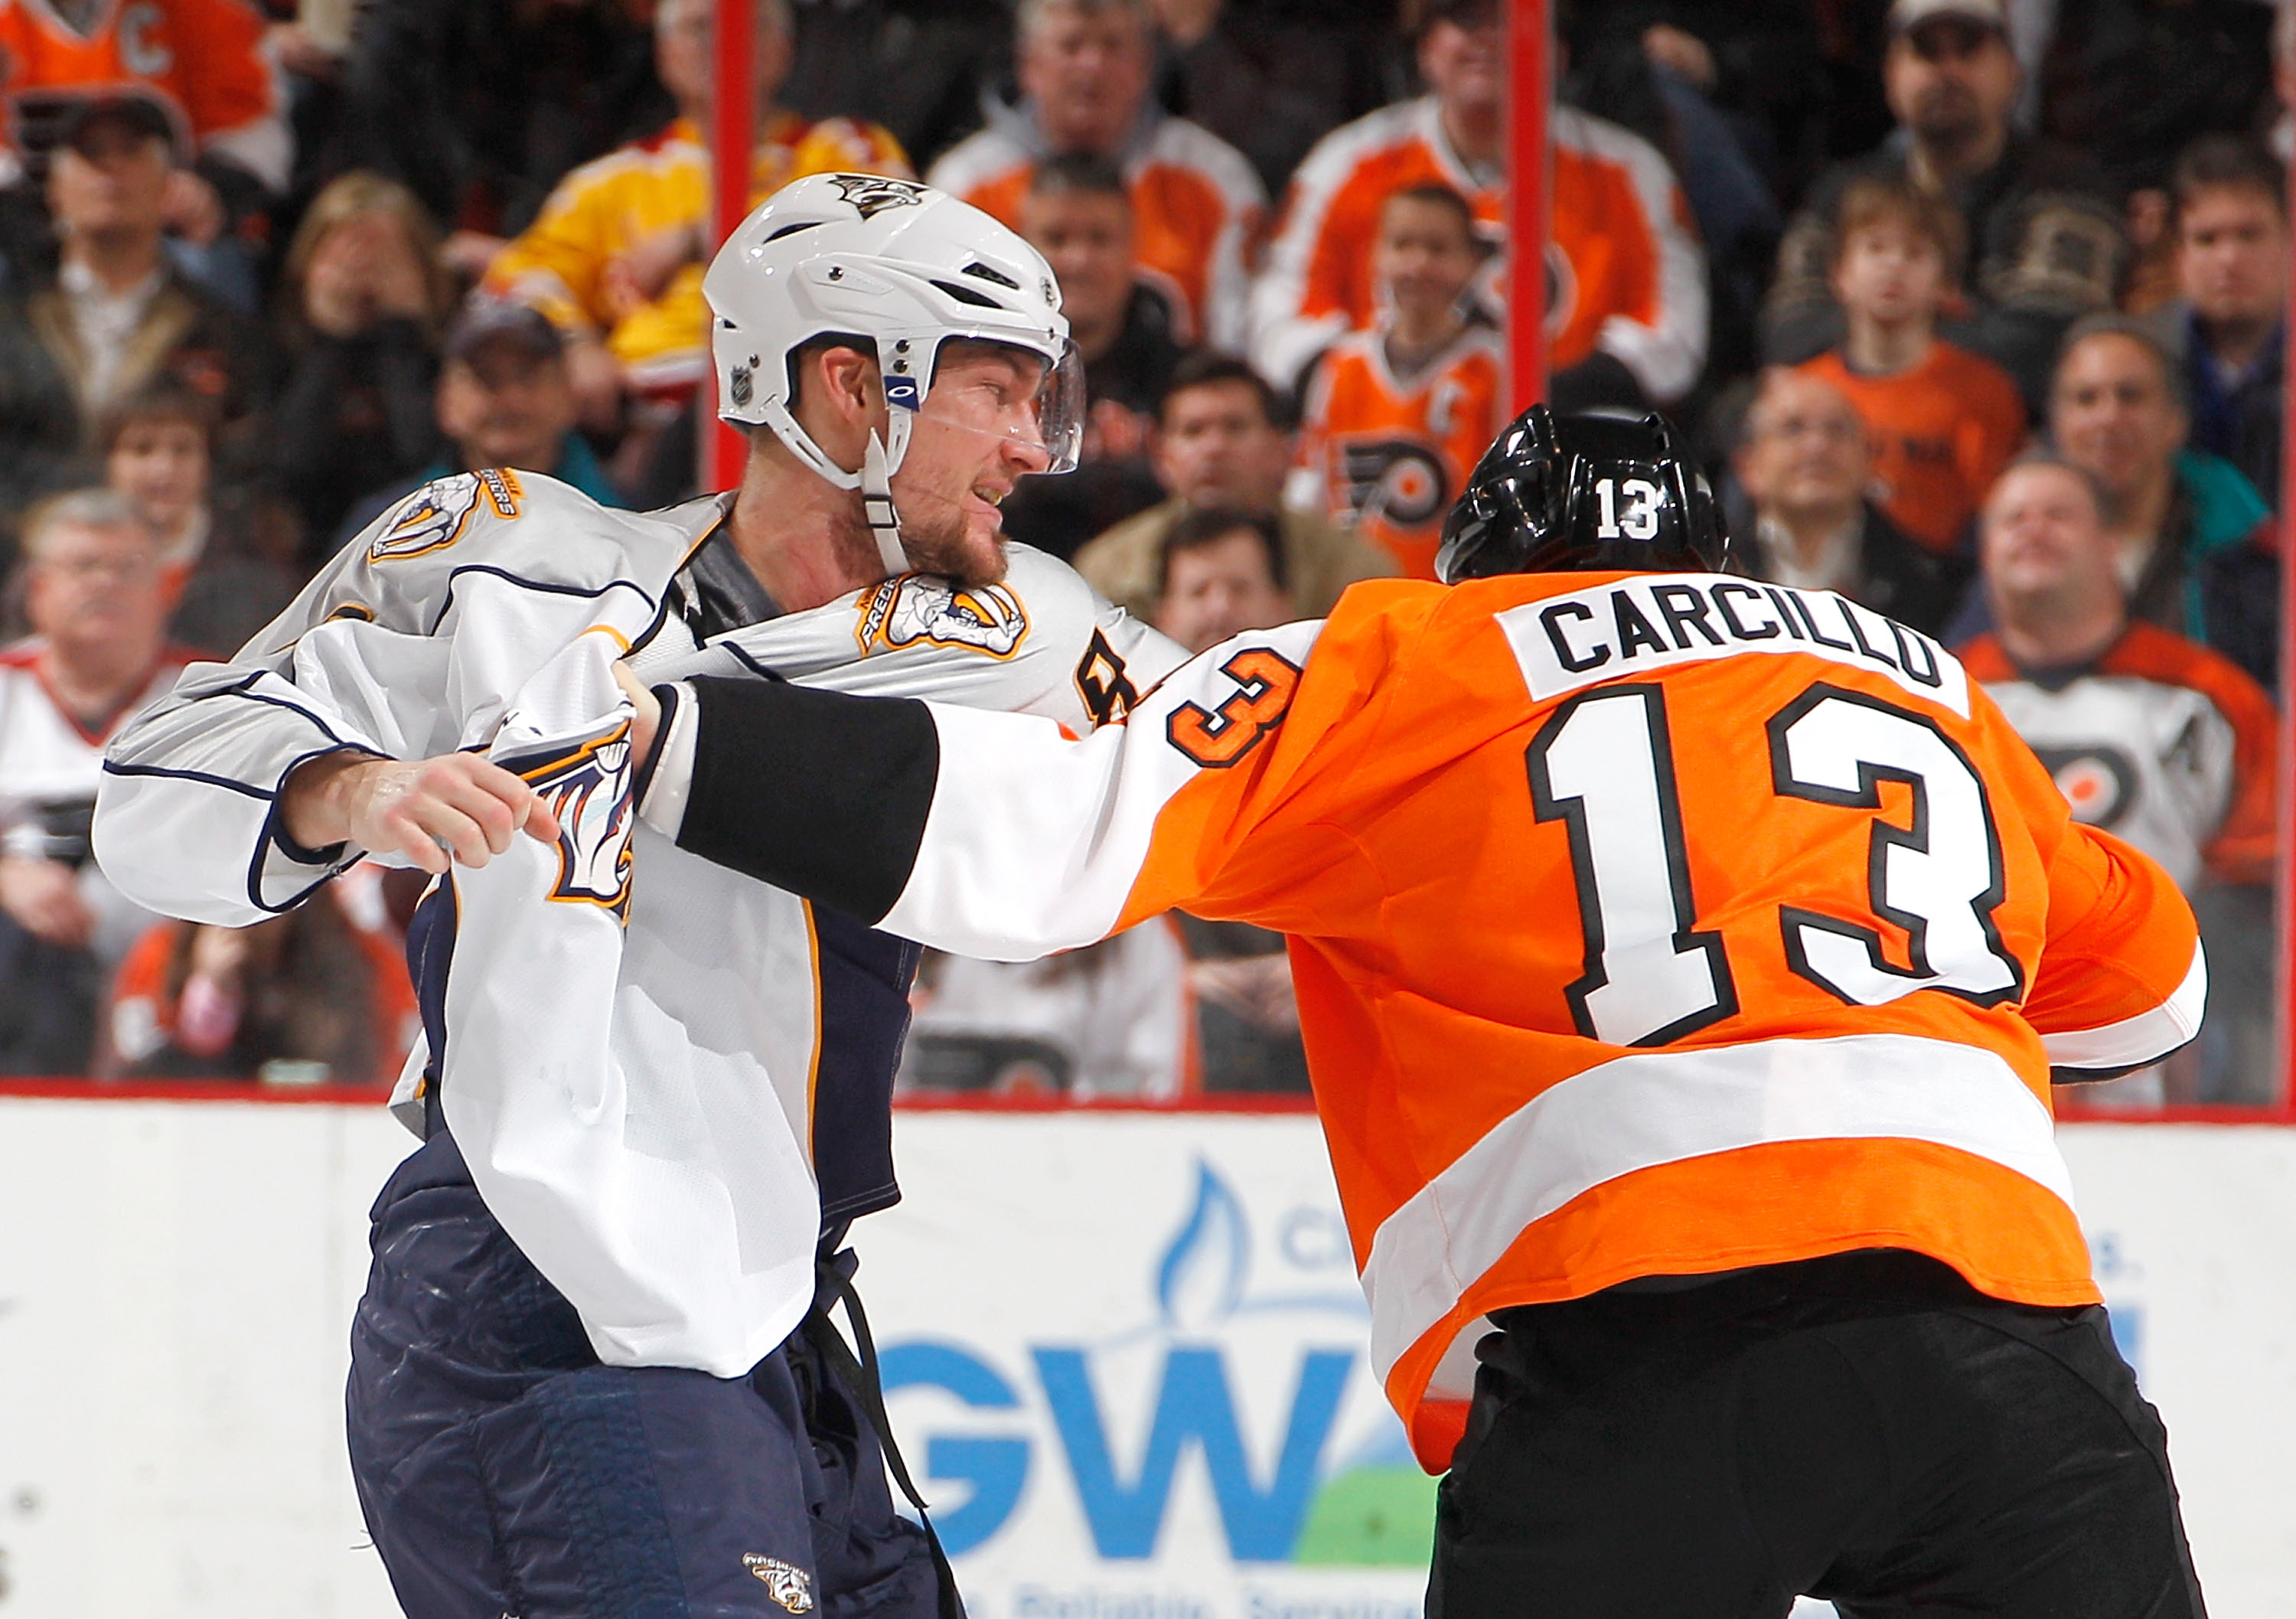 PHILADELPHIA, PA - FEBRUARY 03:  Alexander Sulzer #52 of the Nashville Predators fights with Daniel Carcillo #13 of the Philadelphia Flyers during the second period of an NHL hockey game at the Wells Fargo Center on February 3, 2011 in Philadelphia, Penns